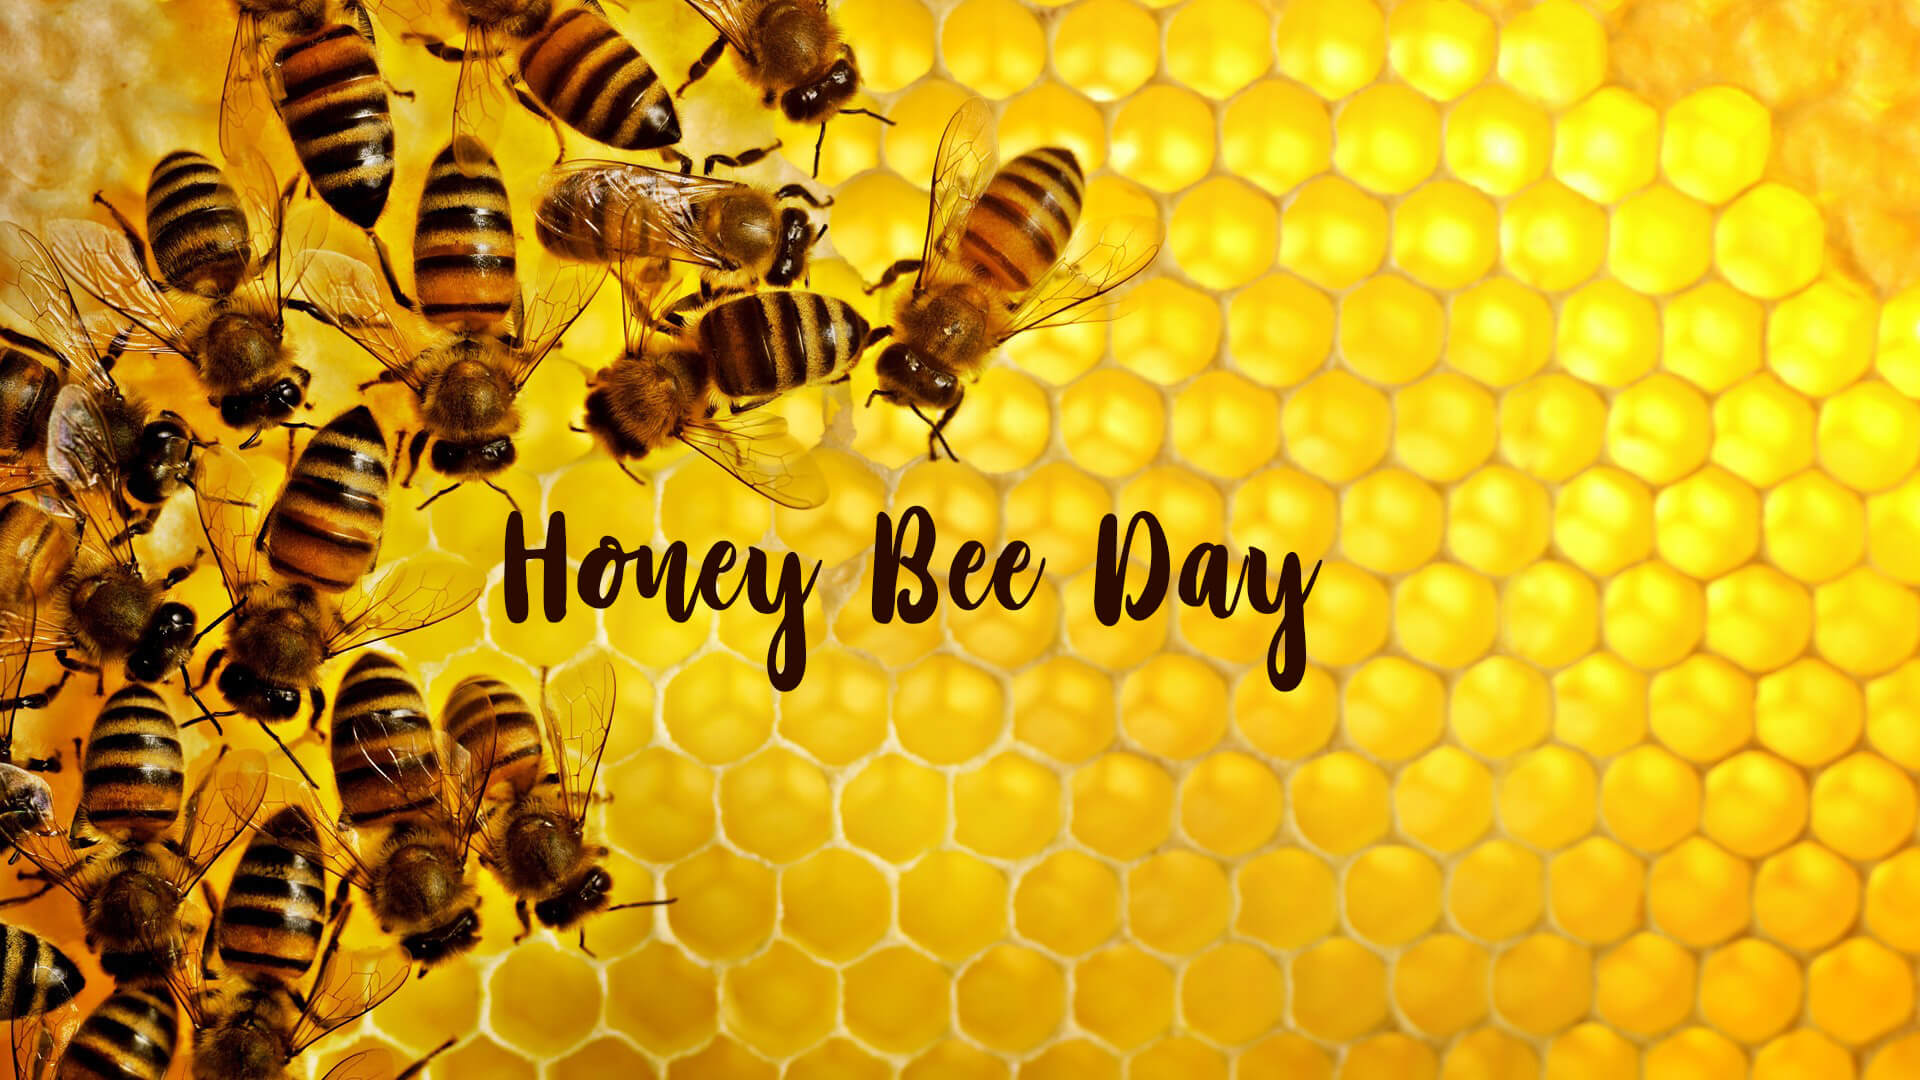 happy honey bee day hive swarm colony hd wallpaper